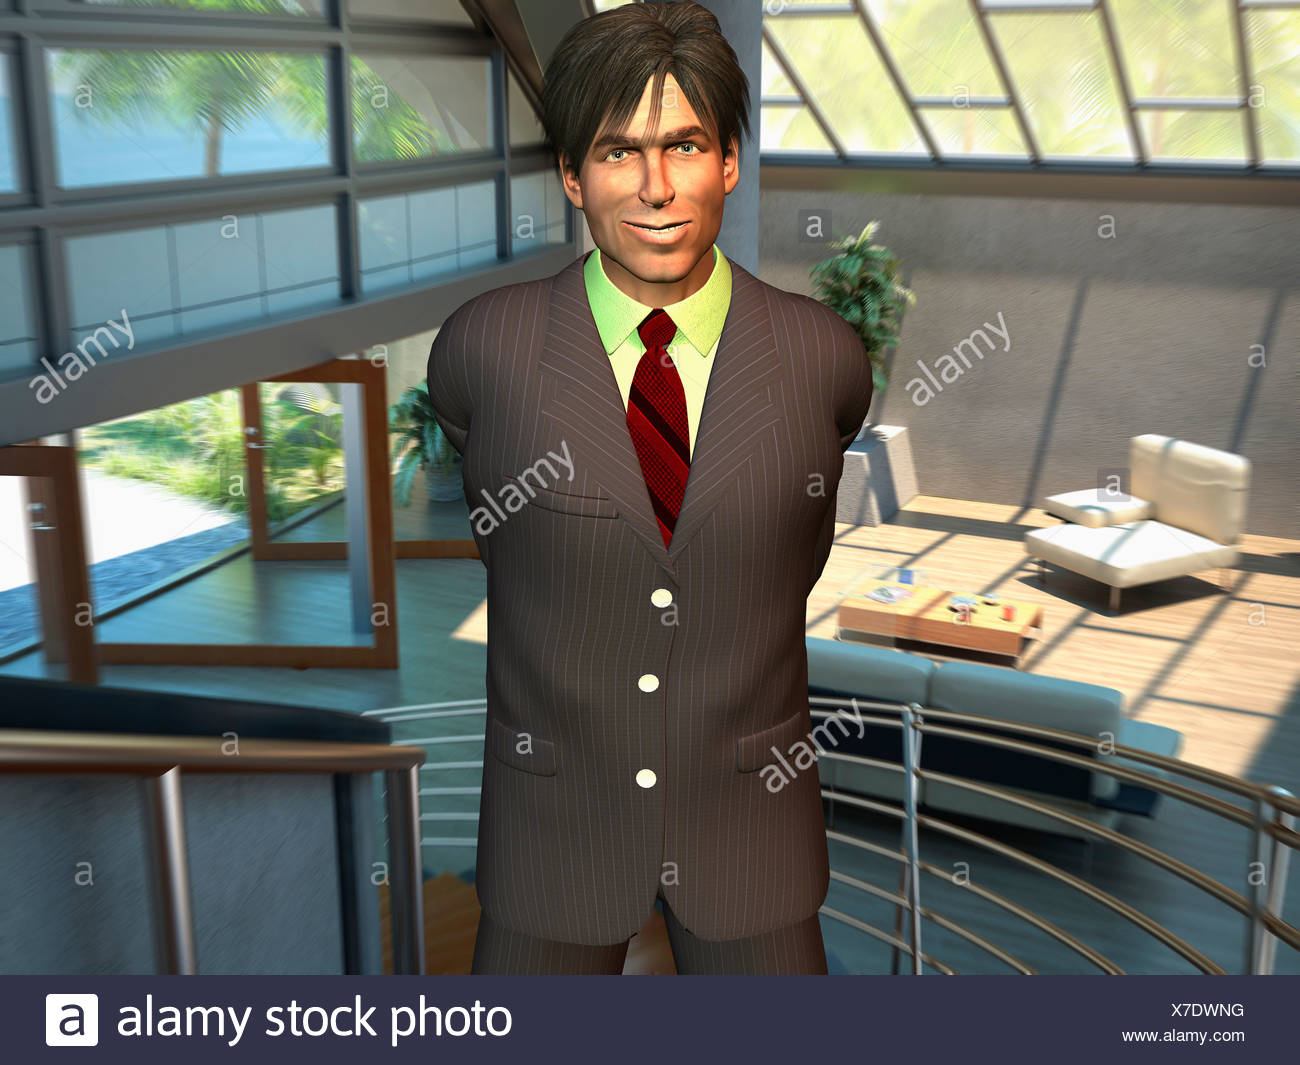 Computer Generated Image Of A Businessman Smiling Into Camera - Stock Image